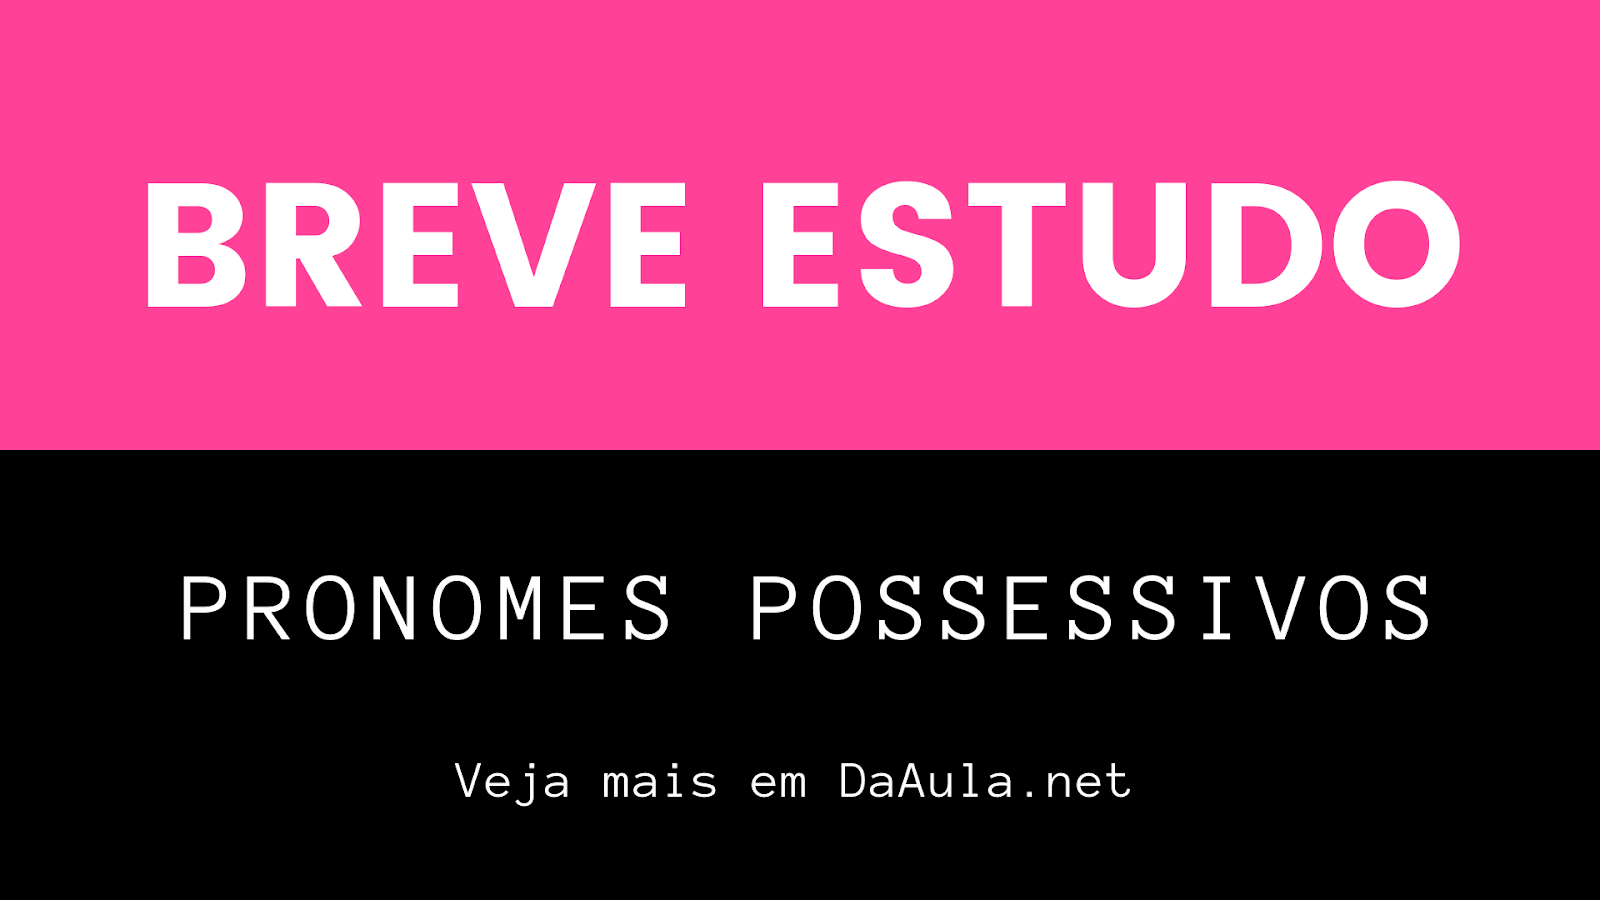 Breve Estudo de Pronomes Possessivos